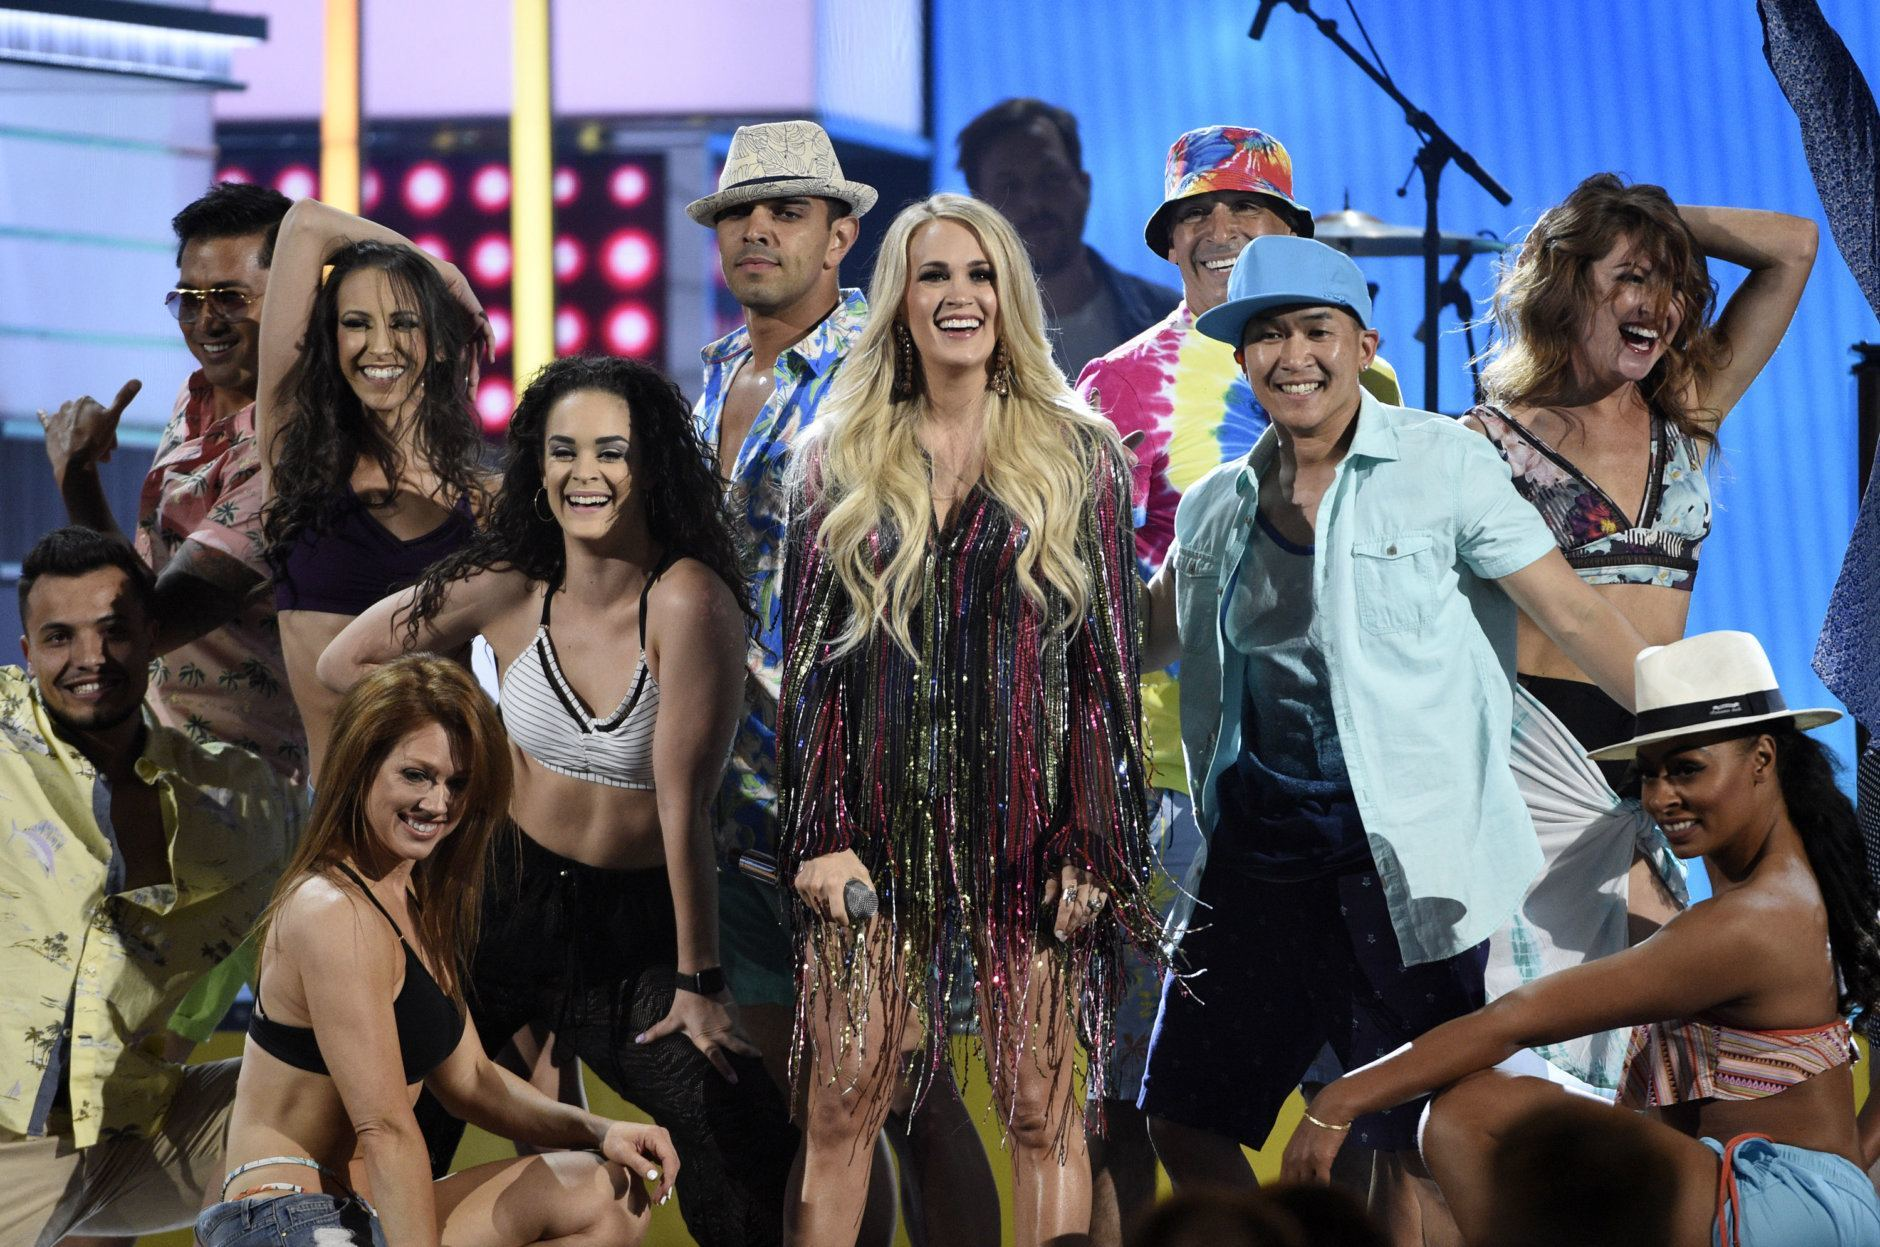 """Carrie Underwood, center, performs """"Southbound"""" at the 54th annual Academy of Country Music Awards at the MGM Grand Garden Arena on Sunday, April 7, 2019, in Las Vegas. (Photo by Chris Pizzello/Invision/AP)"""